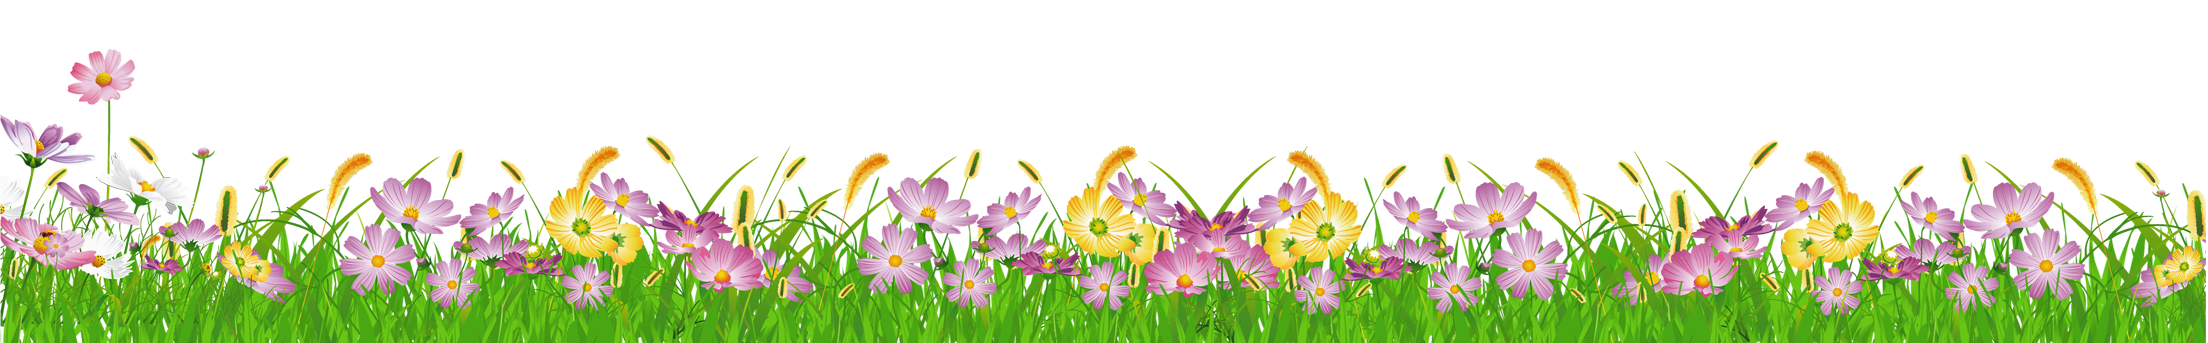 Free cliparts download clip. Clipart grass flower